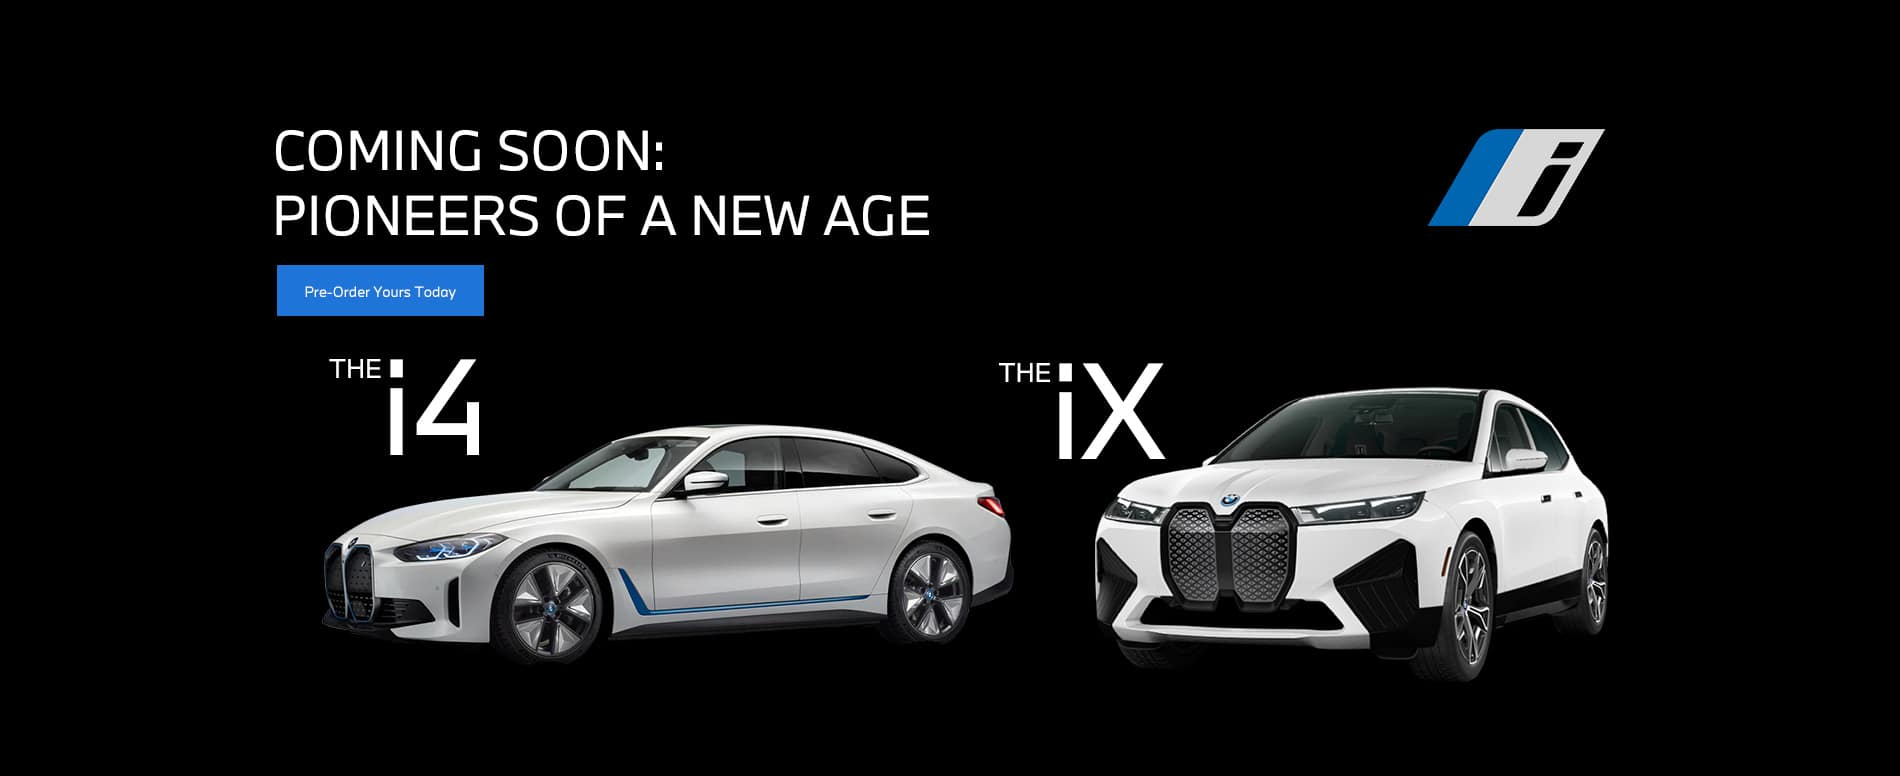 Coming soon: pioneers of a new age showing the new i4 and iX electric BMWs